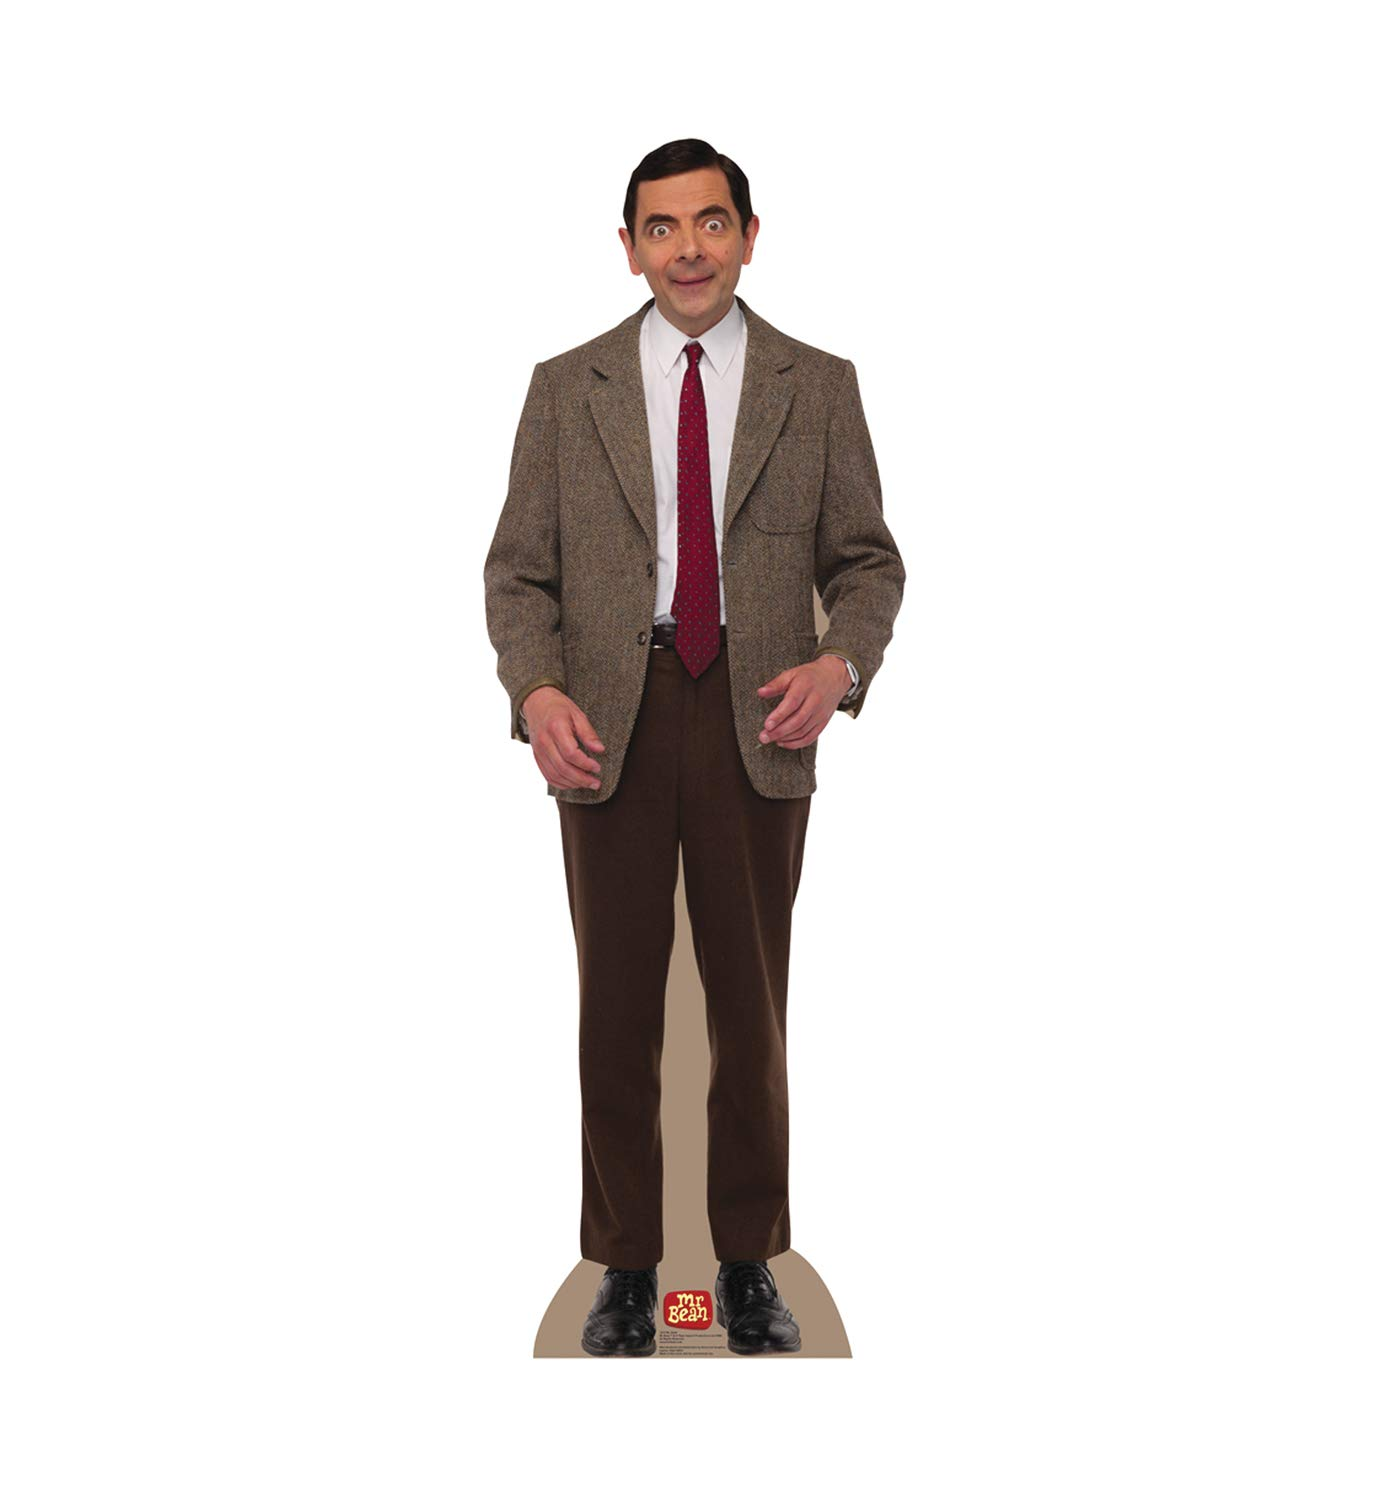 Buy Cardboard People Mr Bean Life Size Cardboard Cutout Standup Online At Low Prices In India Amazon In